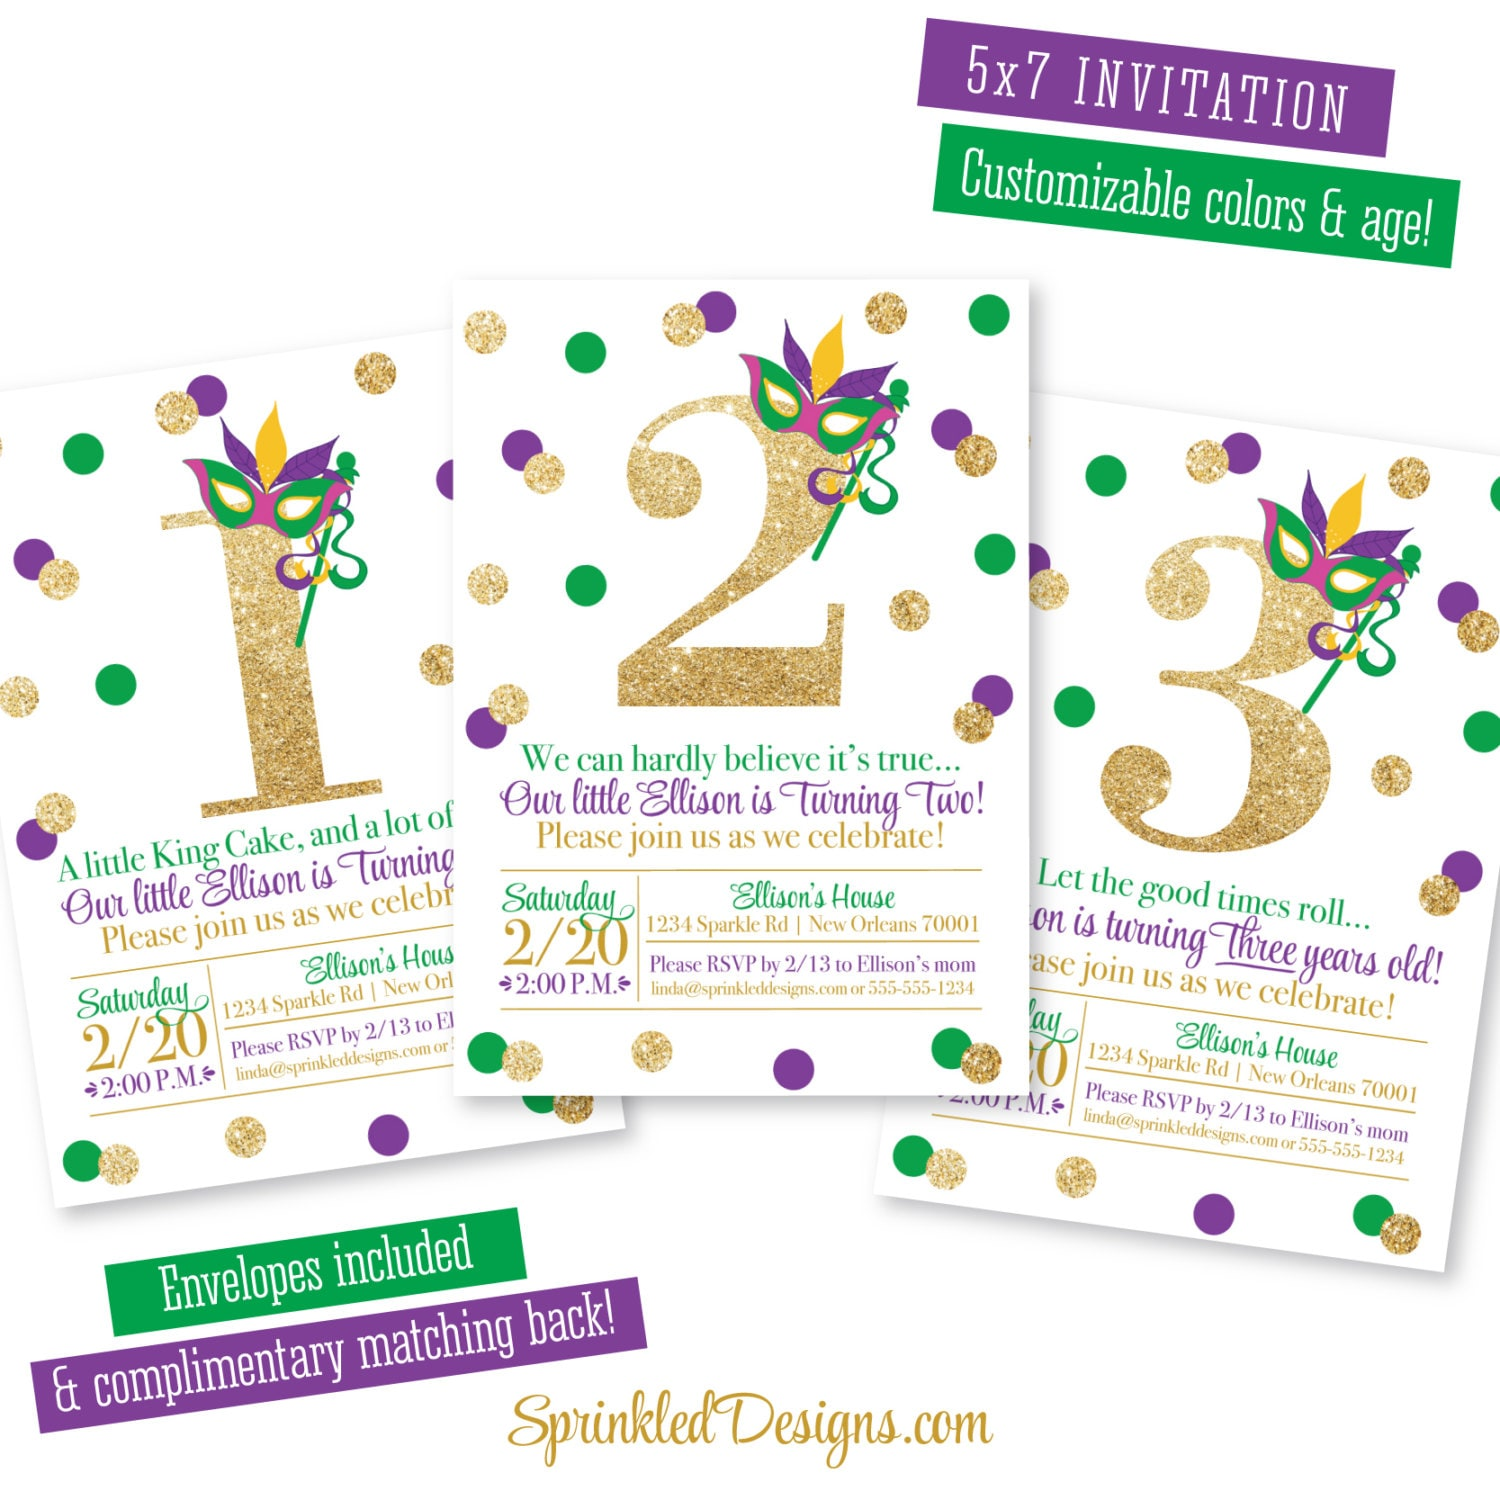 Mardi Gras Birthday Invitation Purple Green Gold Glitter Jpg 1500x1500 New Orleans Party Ideas